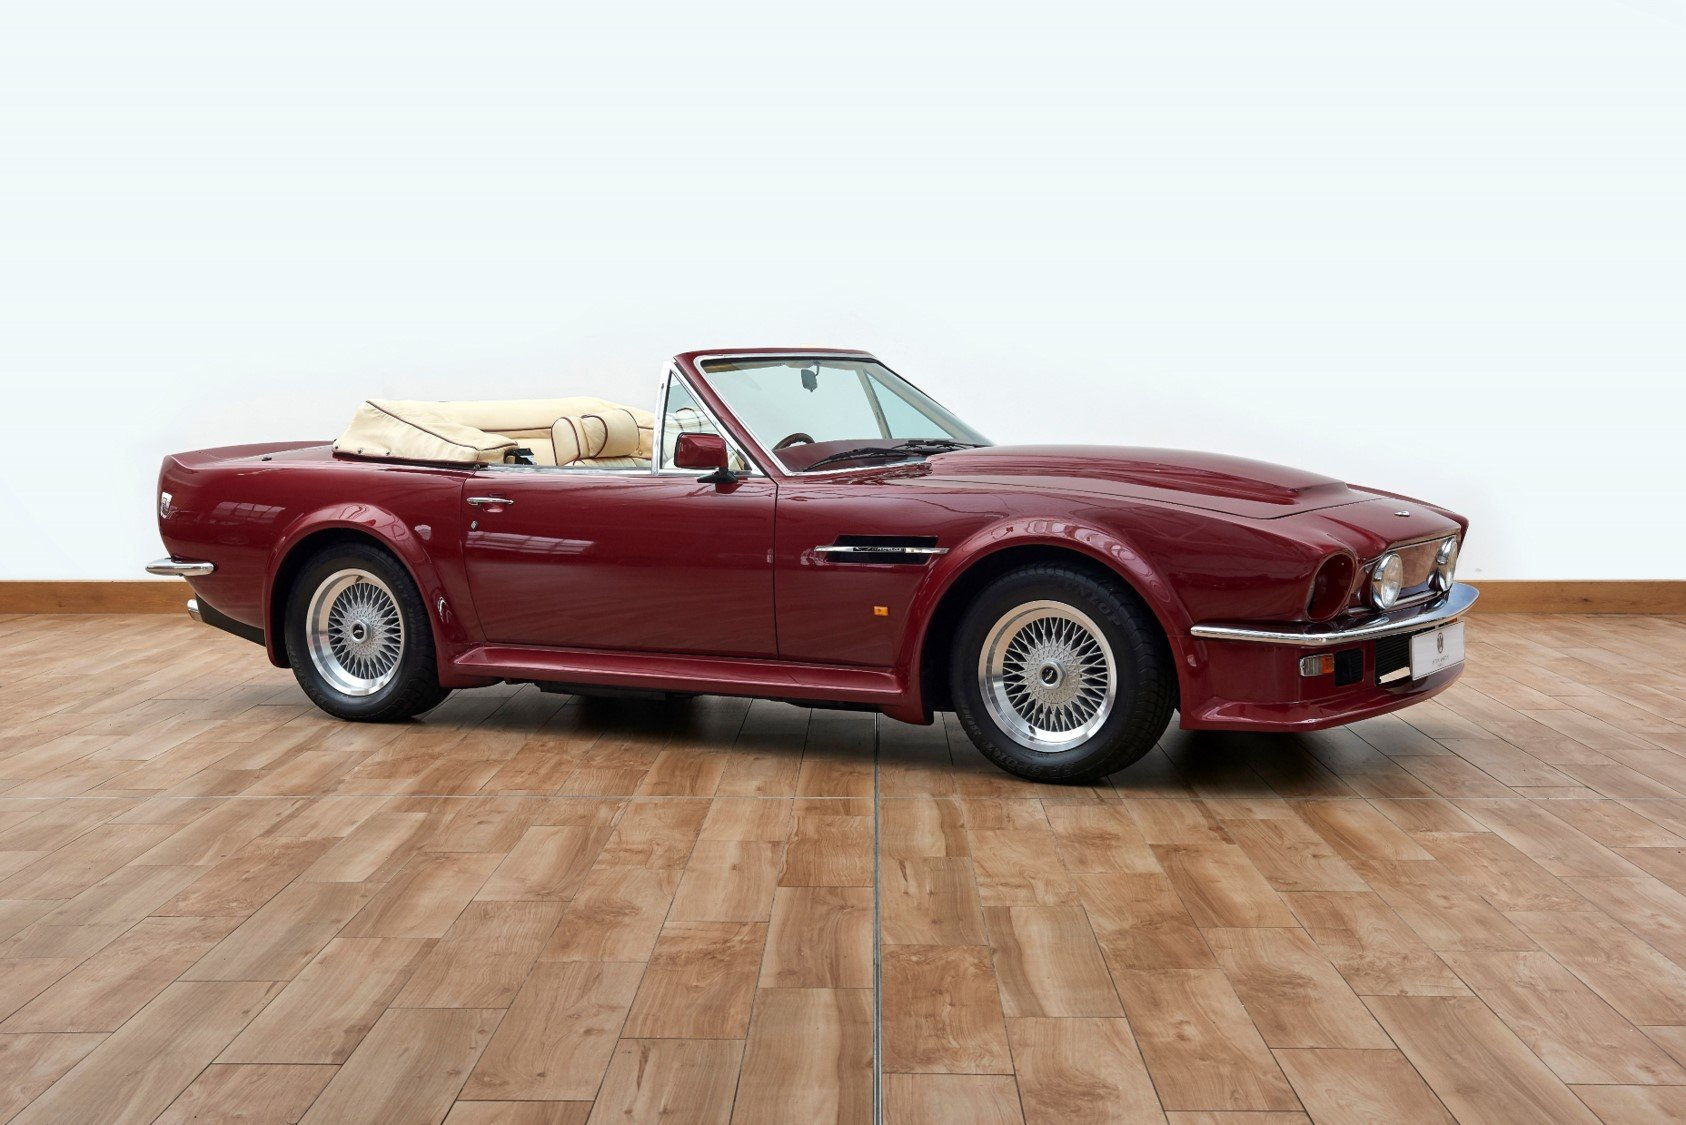 1987 Aston Martin AMV8 Vantage X-Pack Volante For Sale (picture 1 of 6)